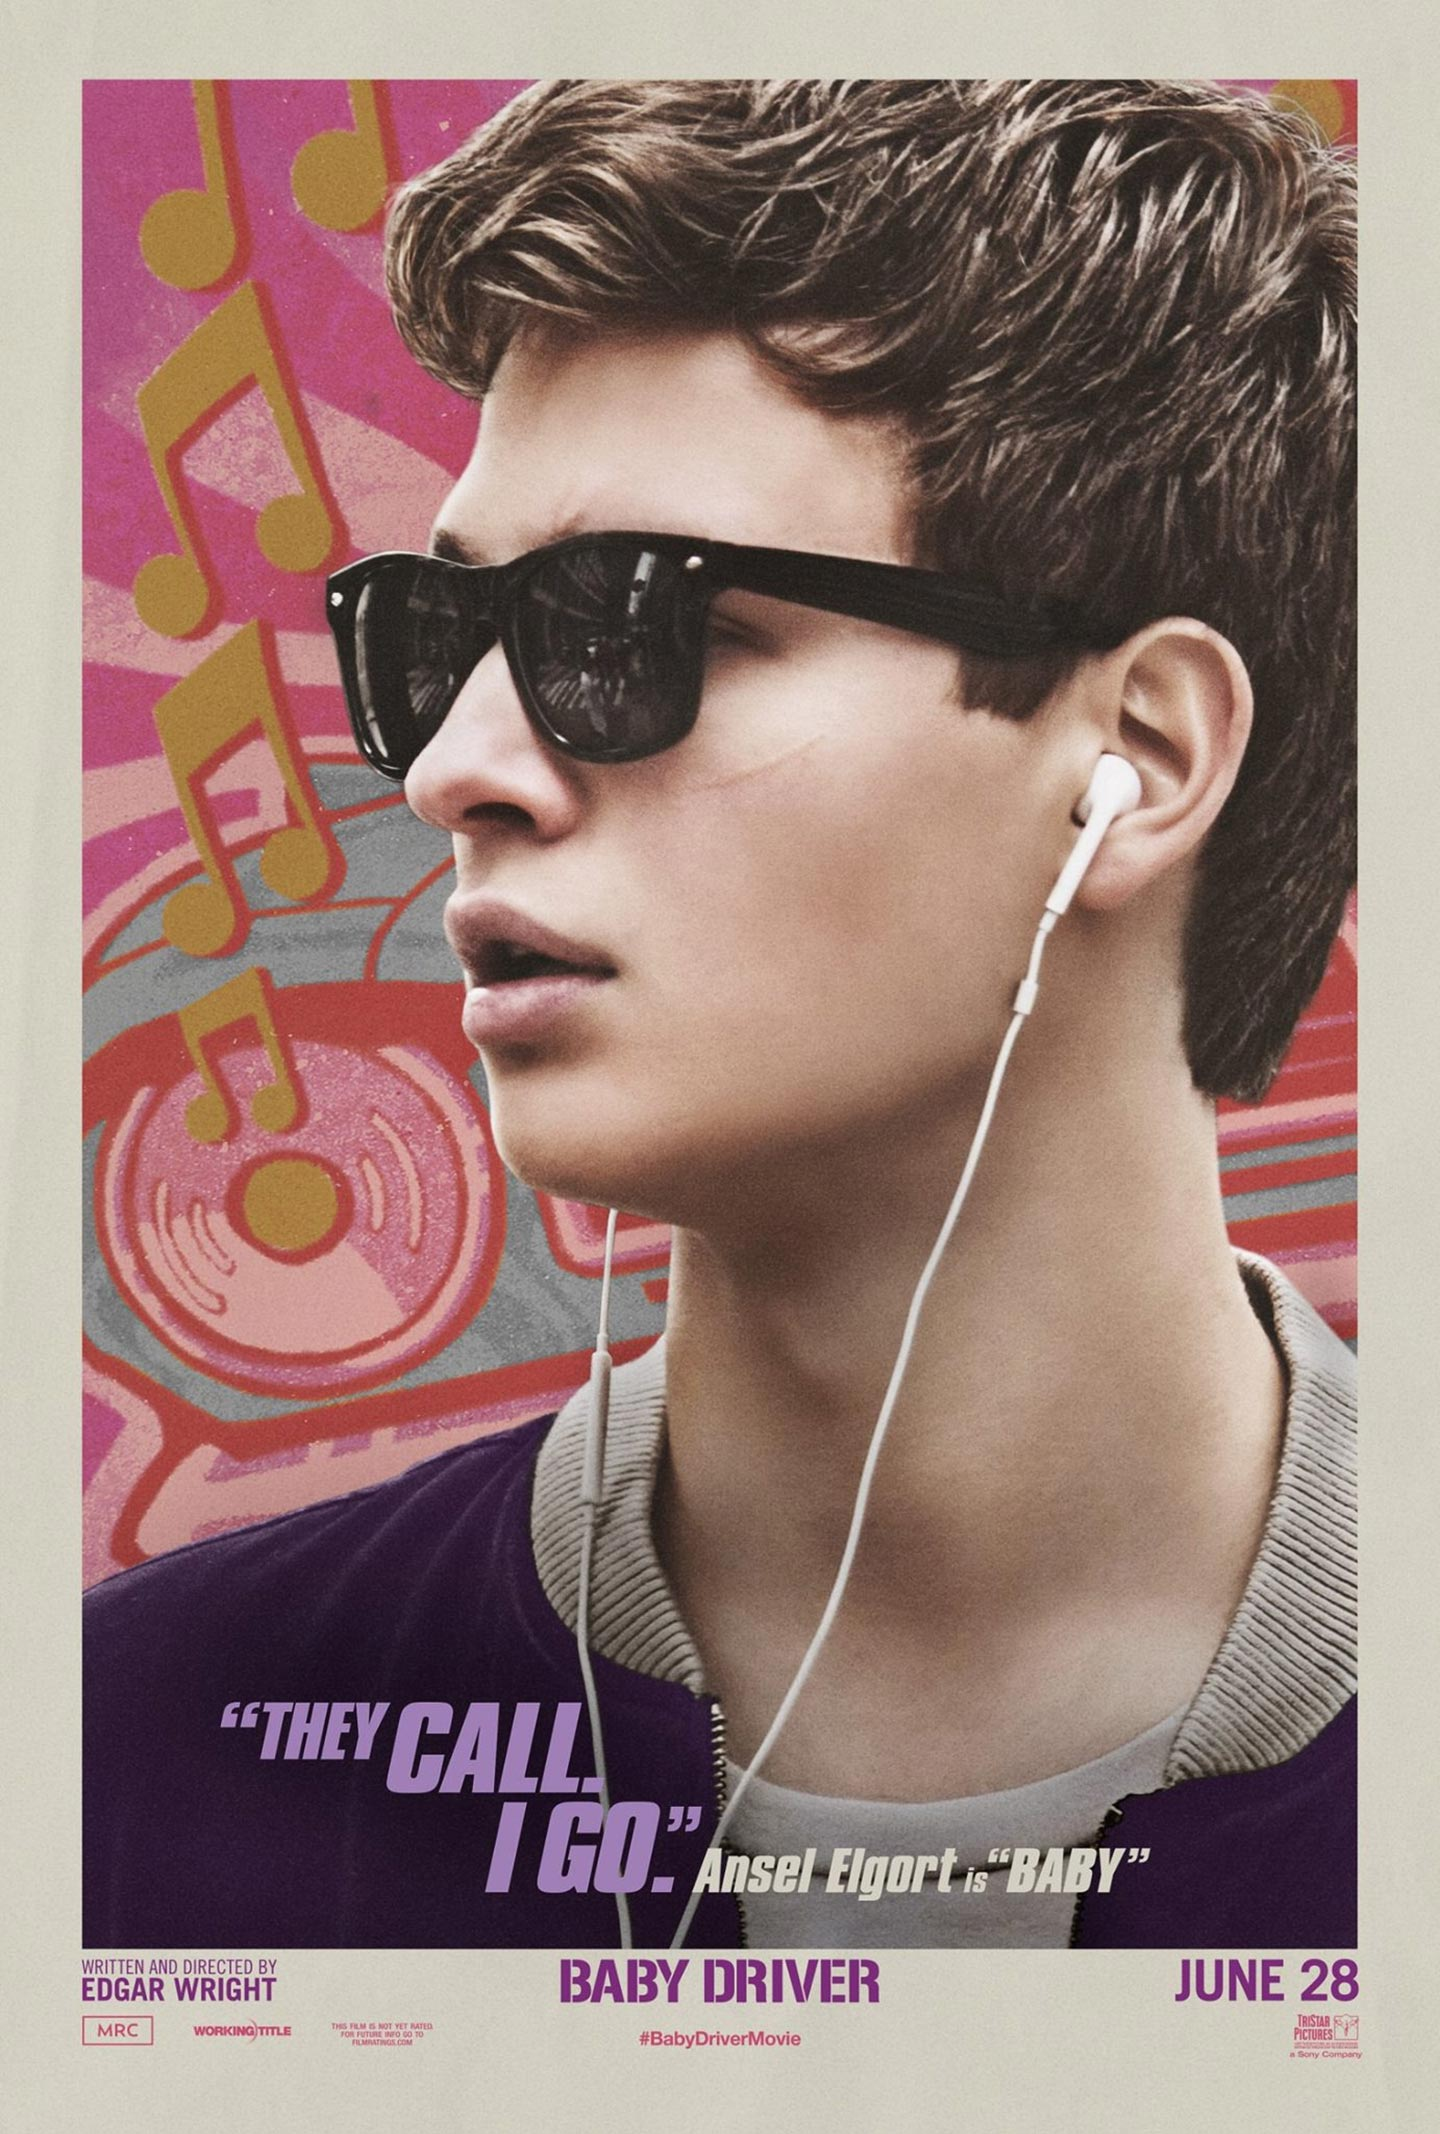 Baby Driver (2017) Poster #4 - Trailer Addict